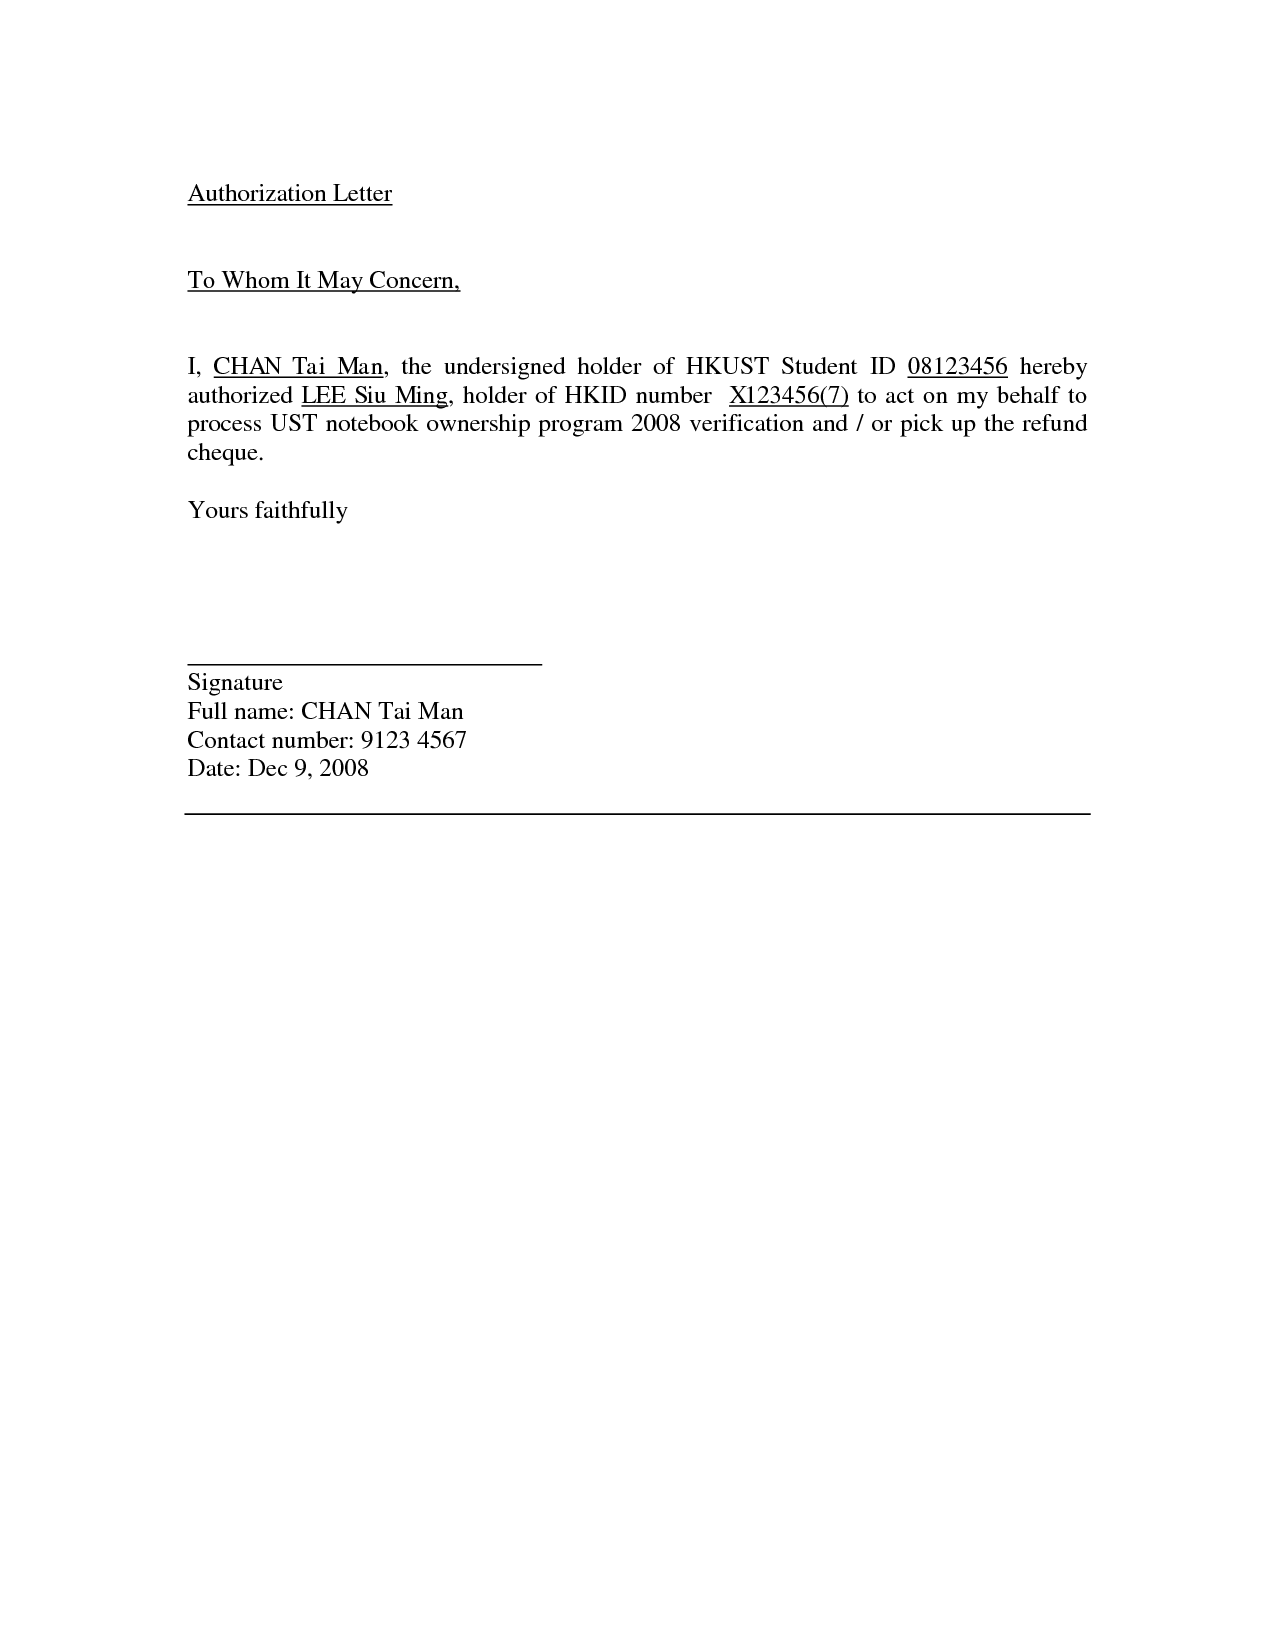 Authorization Letter Samples Act Behalf Word Excel Authority